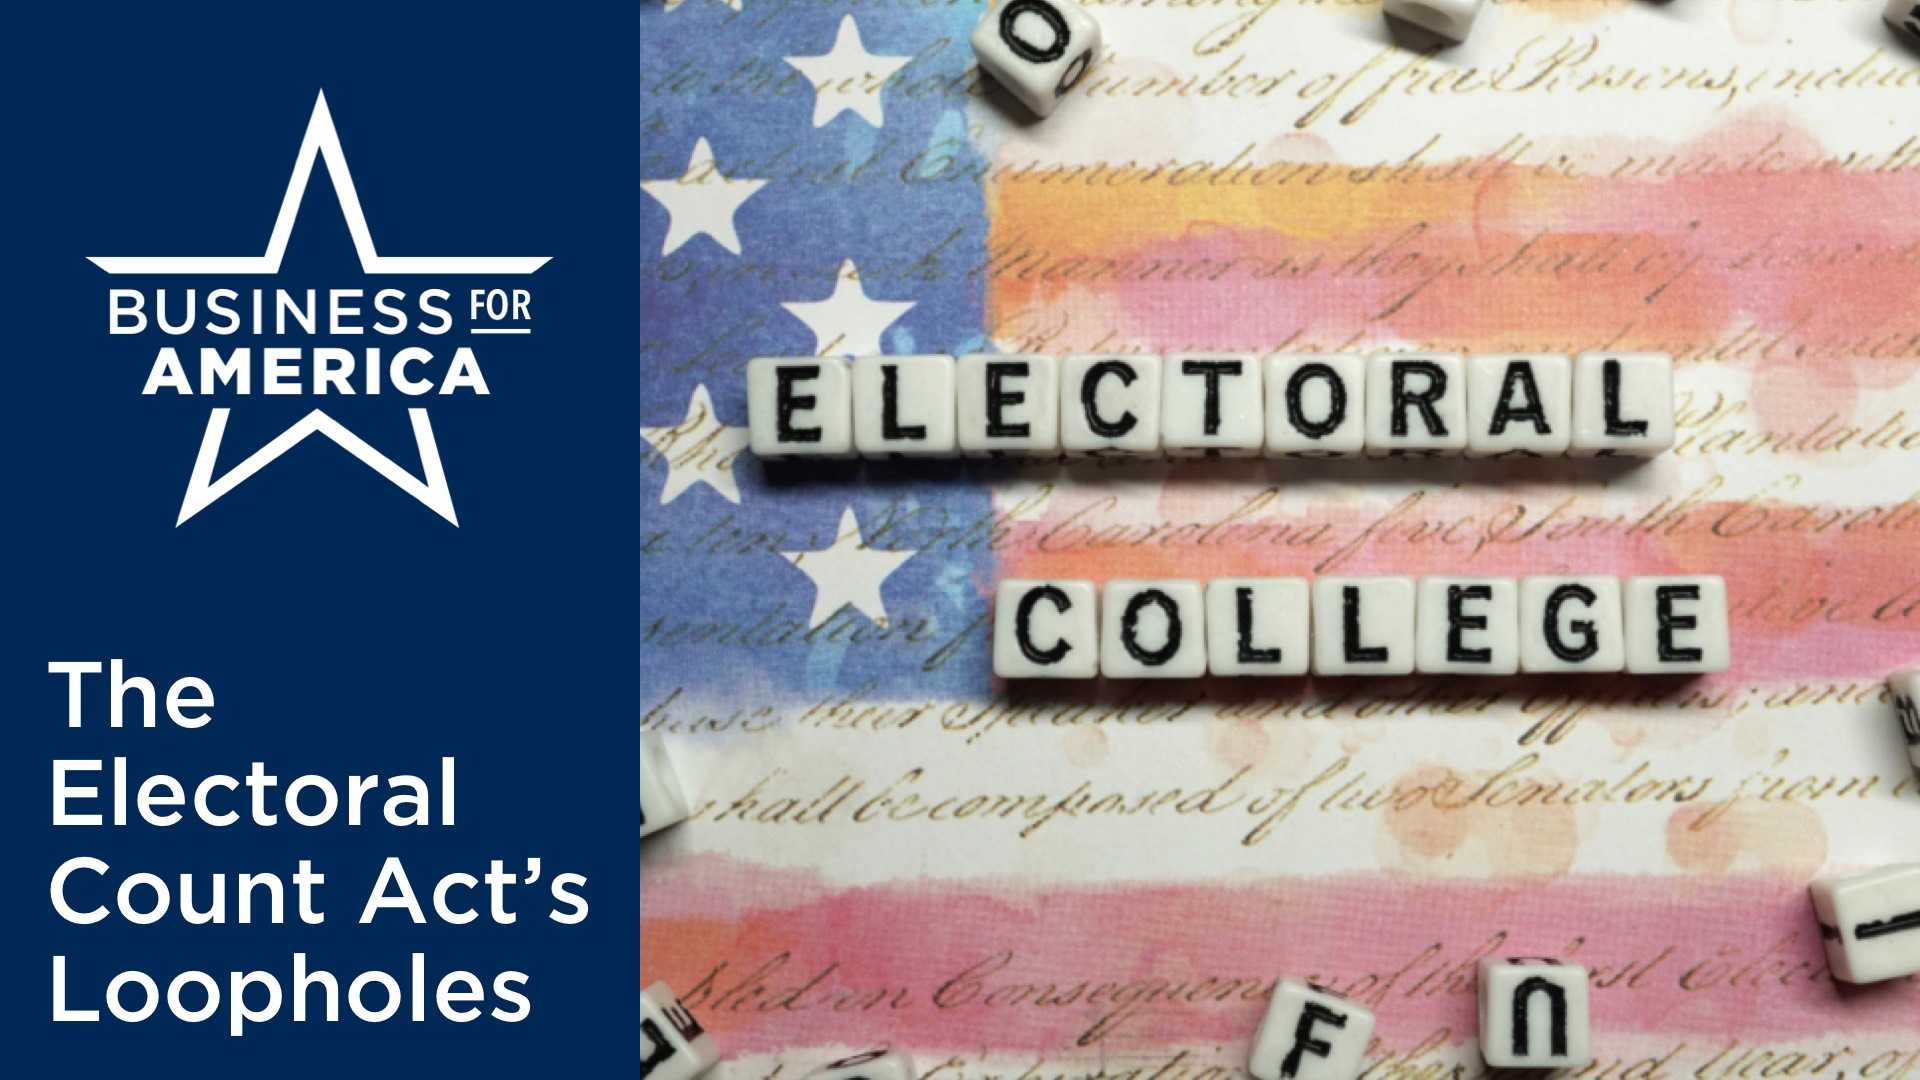 The Electoral Count Act: A Loophole in Our Republic?